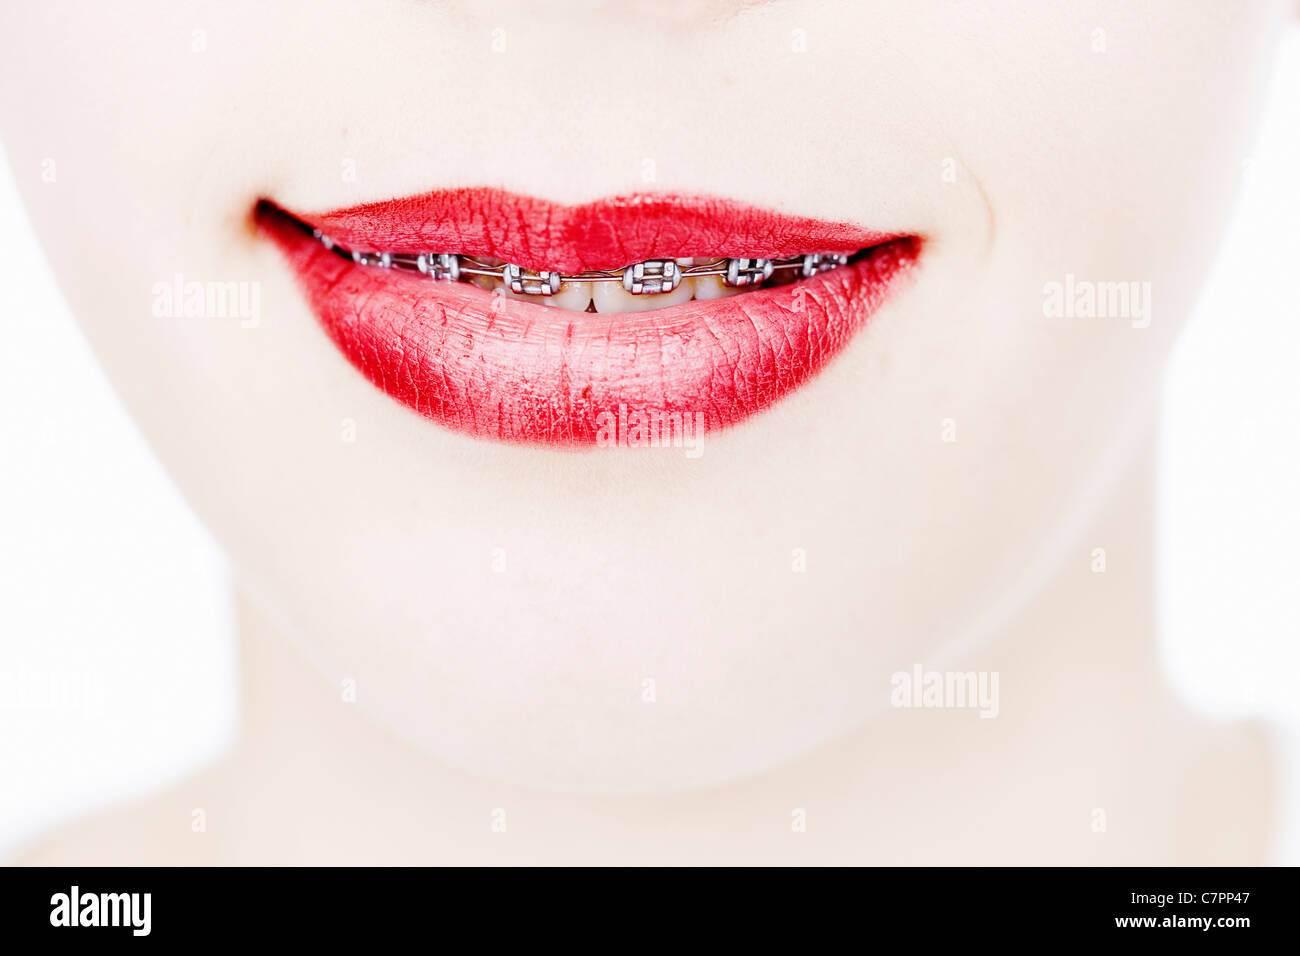 Close up of woman in braces - Stock Image